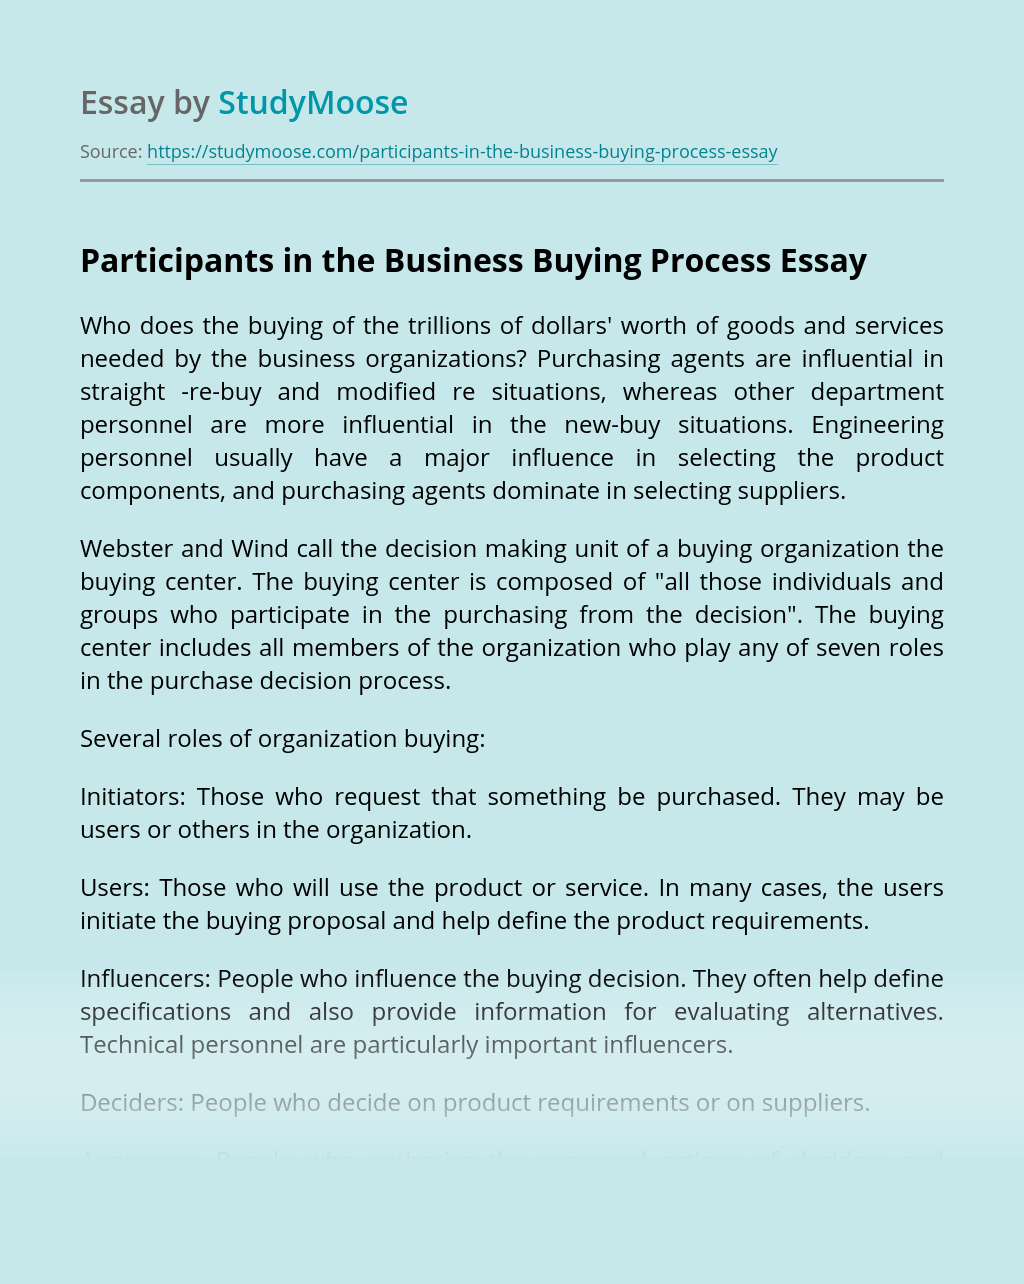 Participants in the Business Buying Process